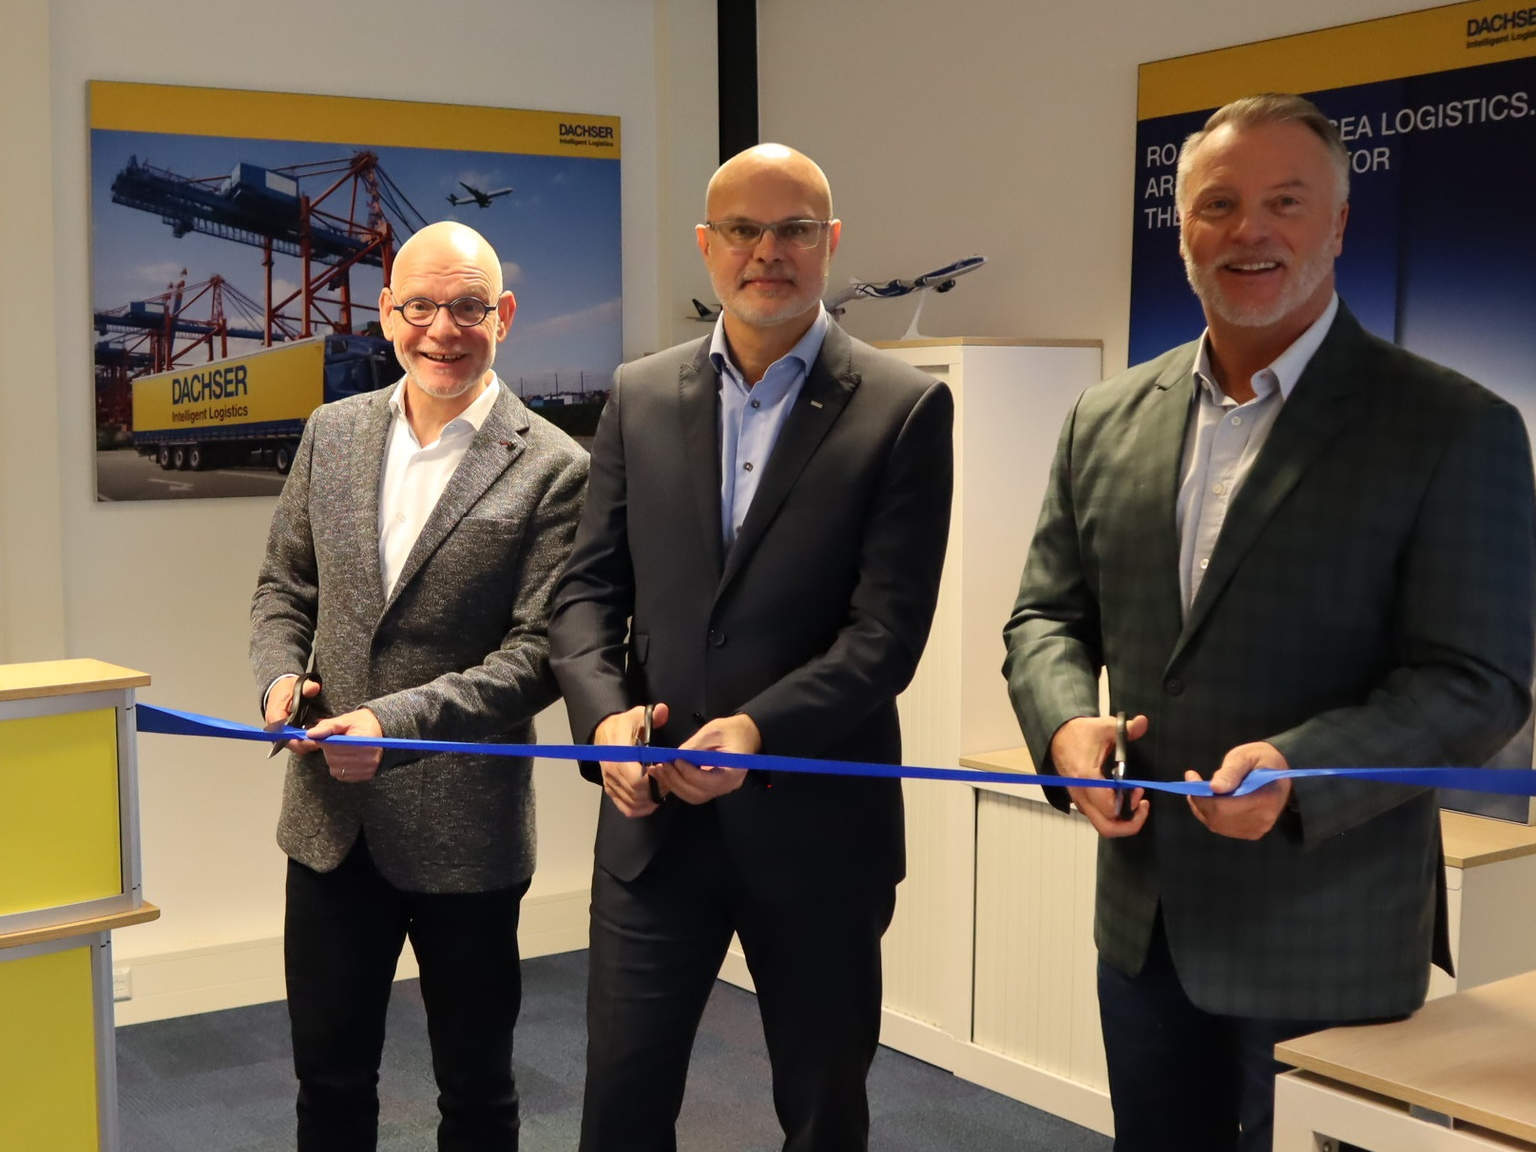 V.l.n.r: Wilco Versteegh, Managing Director DACHSER Air and Sea Logistics Netherlands & Belgium; Raymond Boumans, Branch Manager DACHSER Air & Sea Logistics Maastricht; Aat van der Meer, Managing Director DACHSER Benelux.